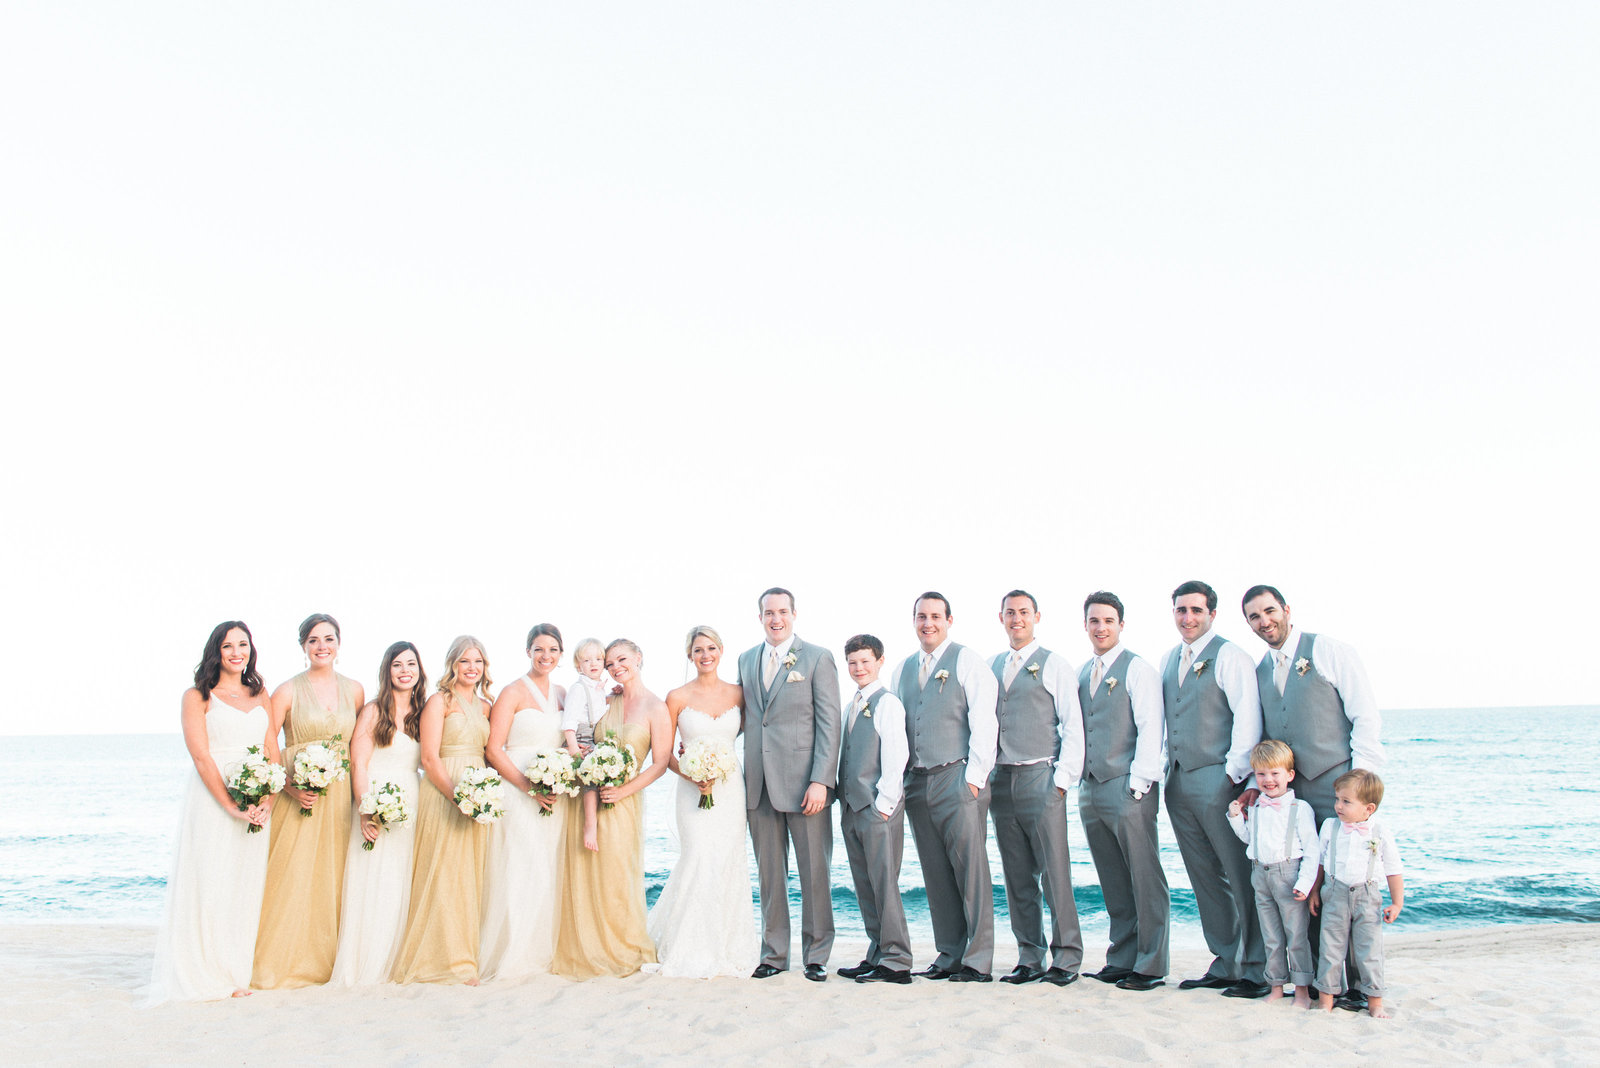 Cabo Mexico Destination Wedding, Wedding Party on Beach, Fine Art Film